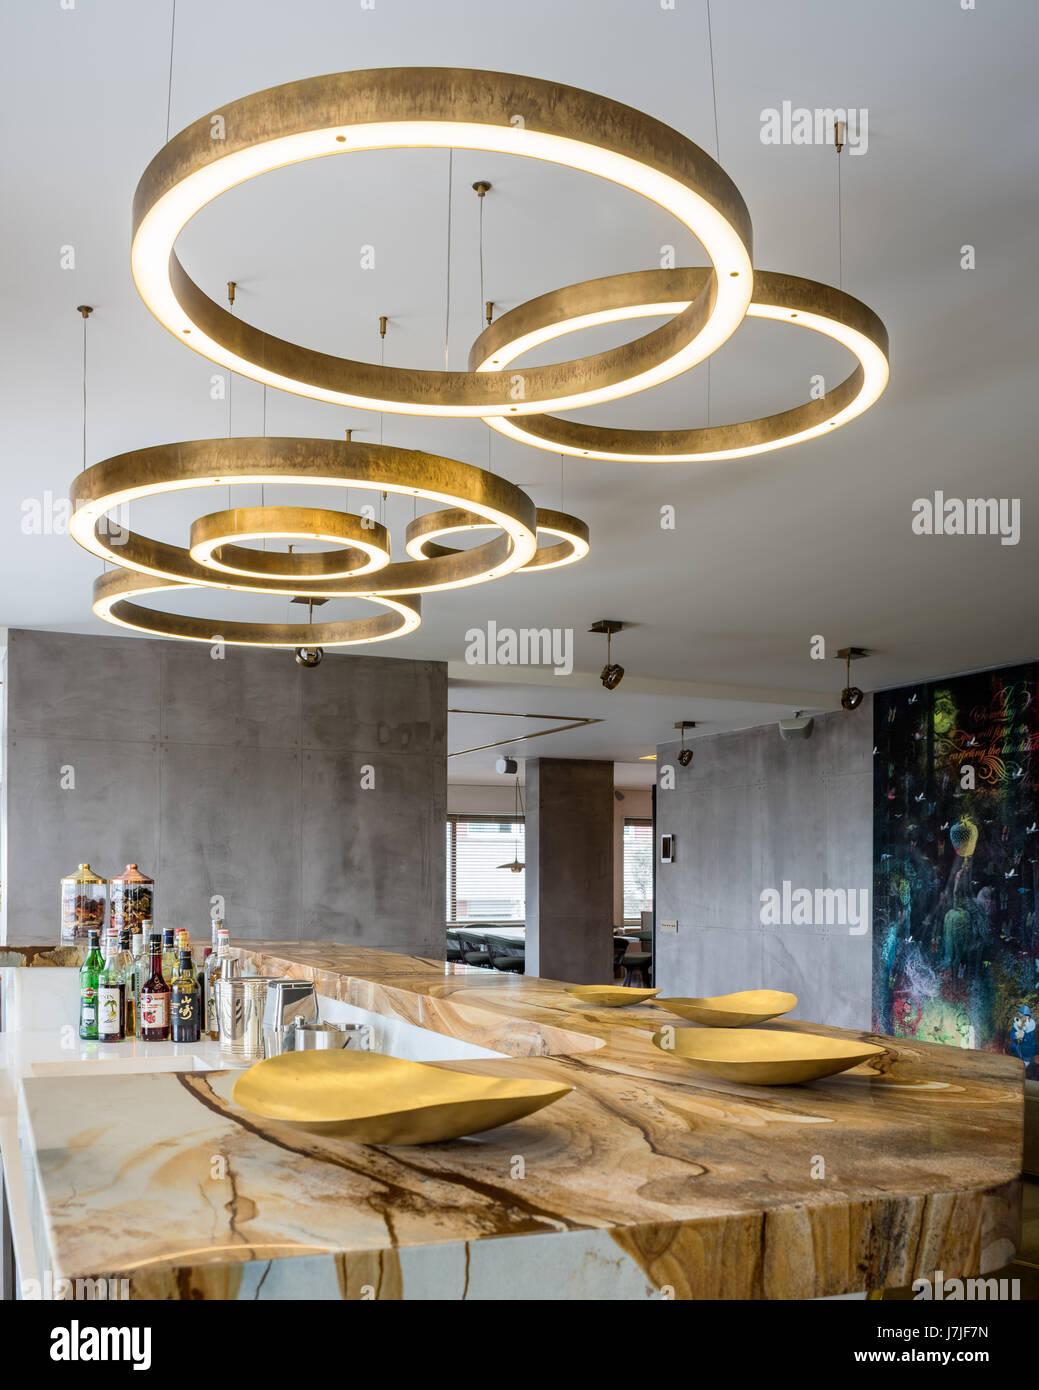 Circular brass light fittings above stonewood marble and onyx bar in Istanbul apartment - Stock Image